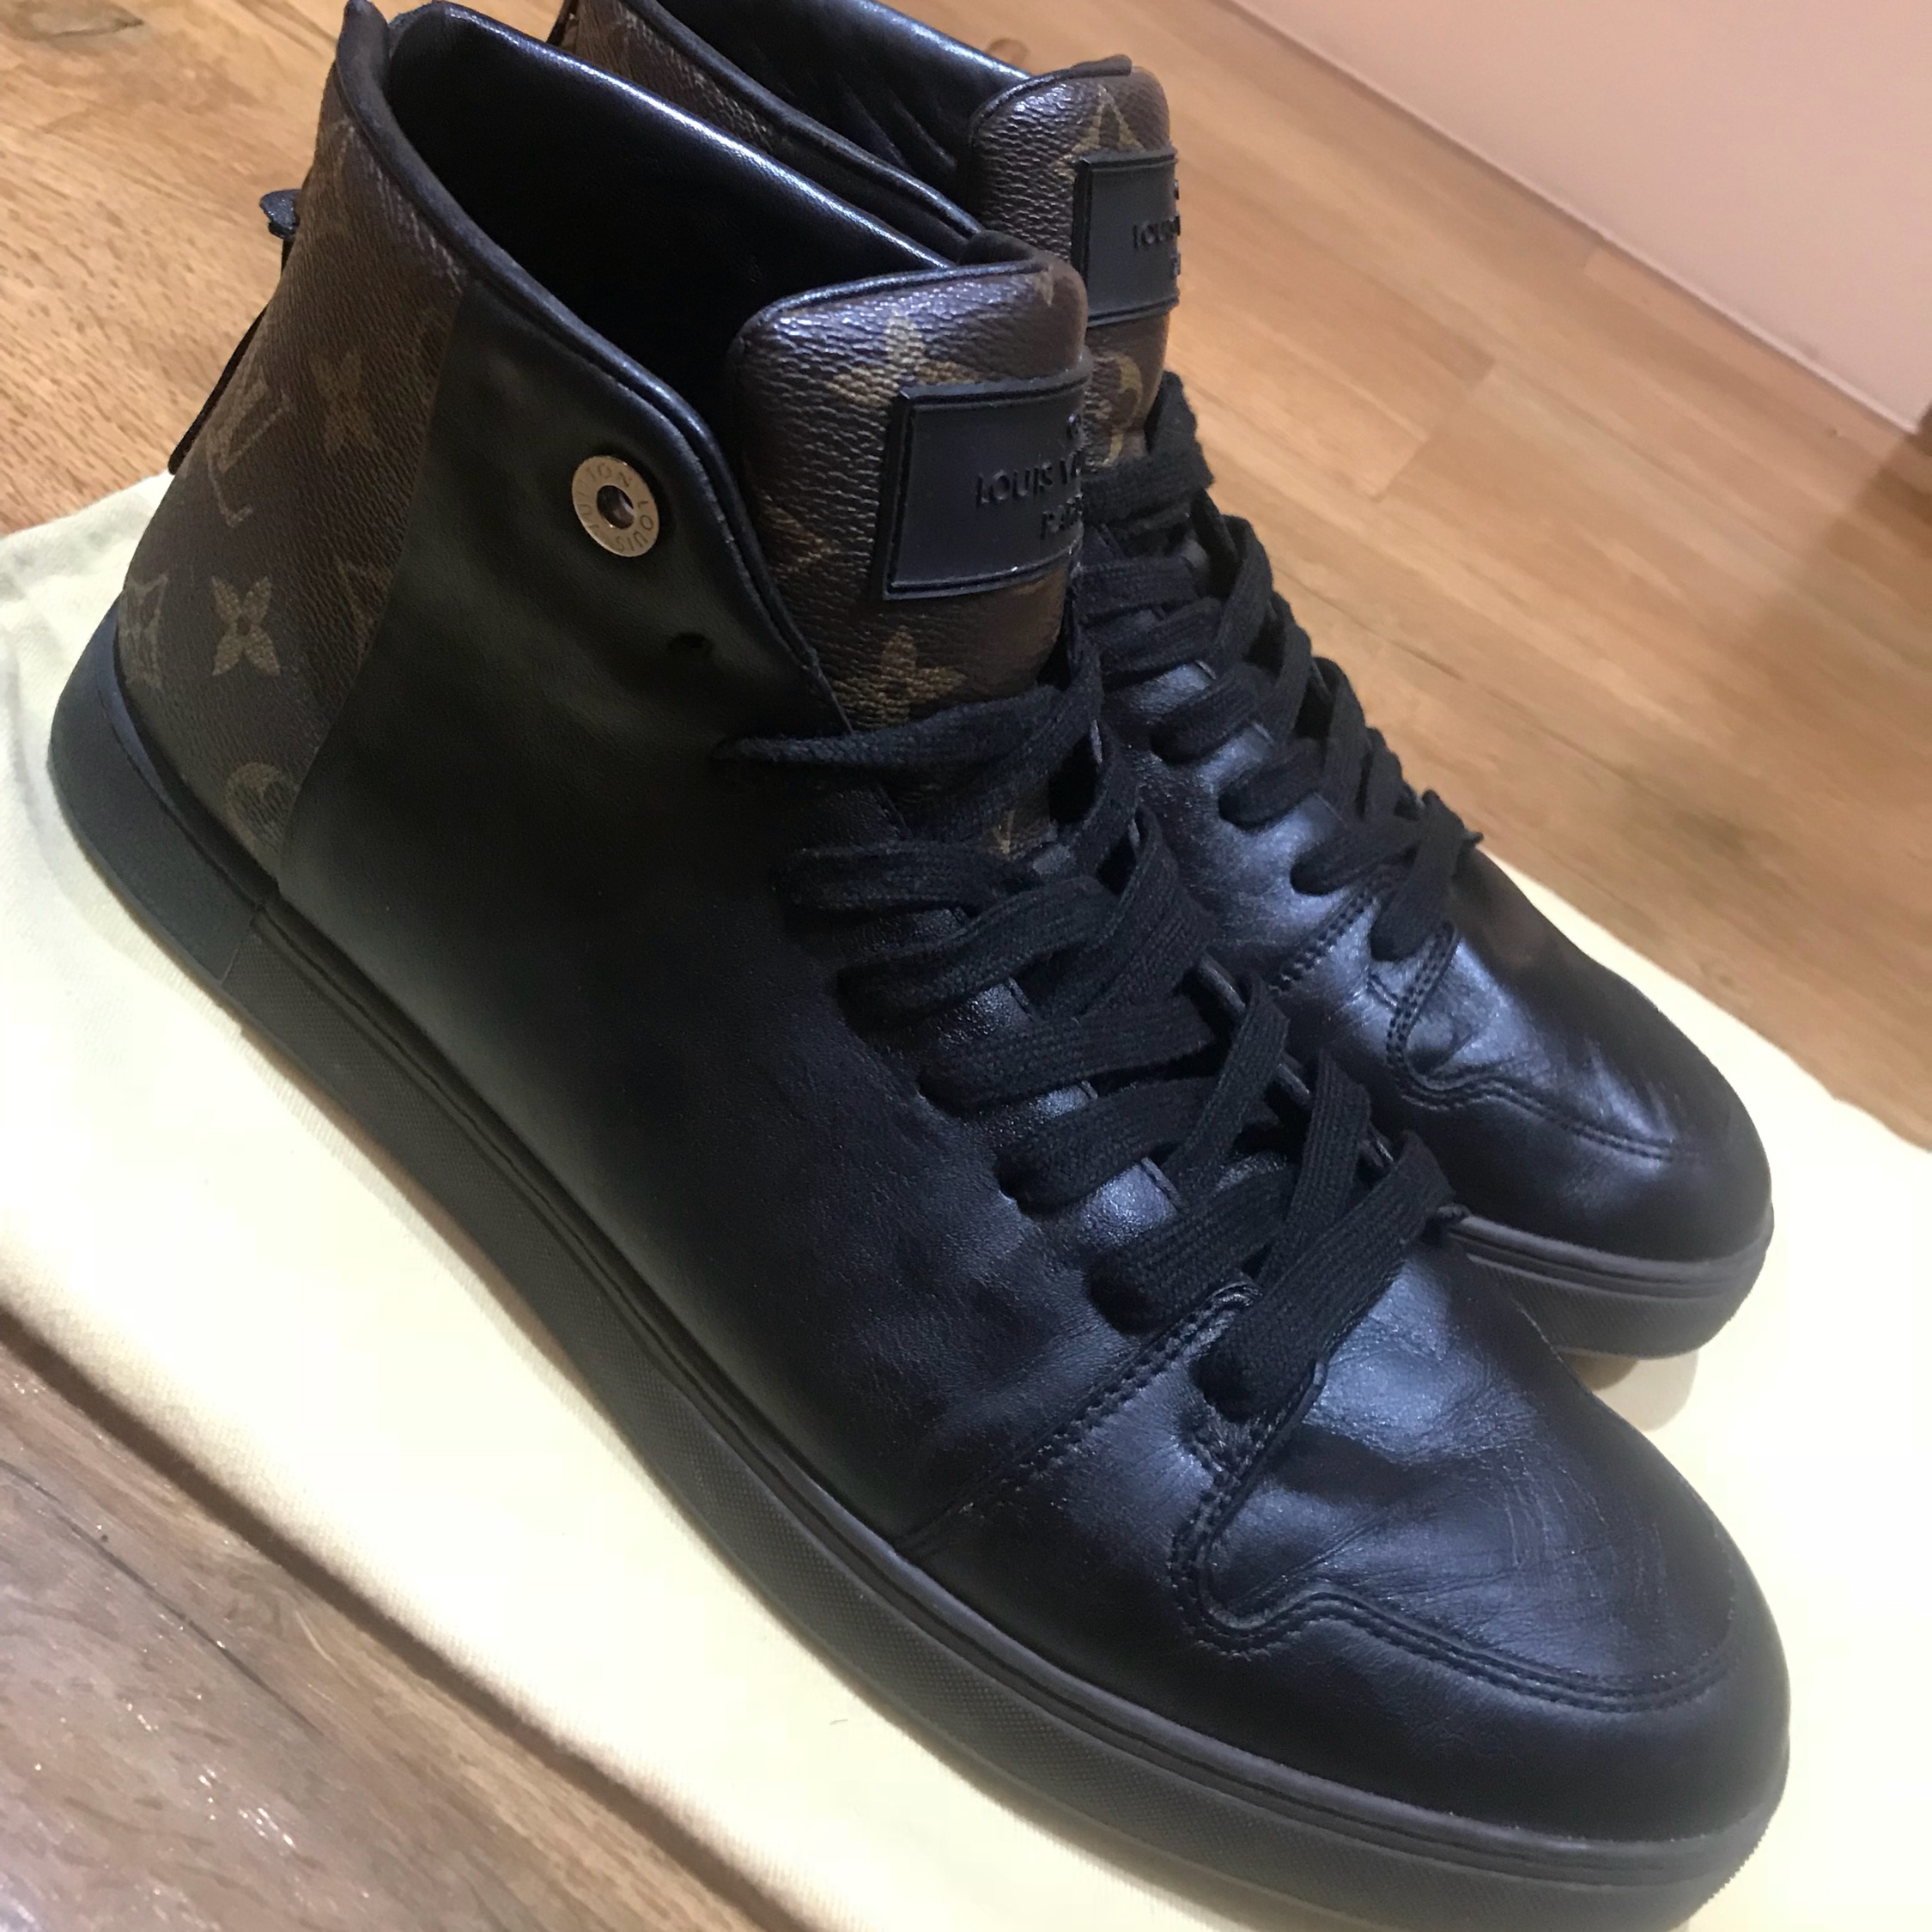 afe6452c62 Louis Vuitton Line Up Sneaker Boots